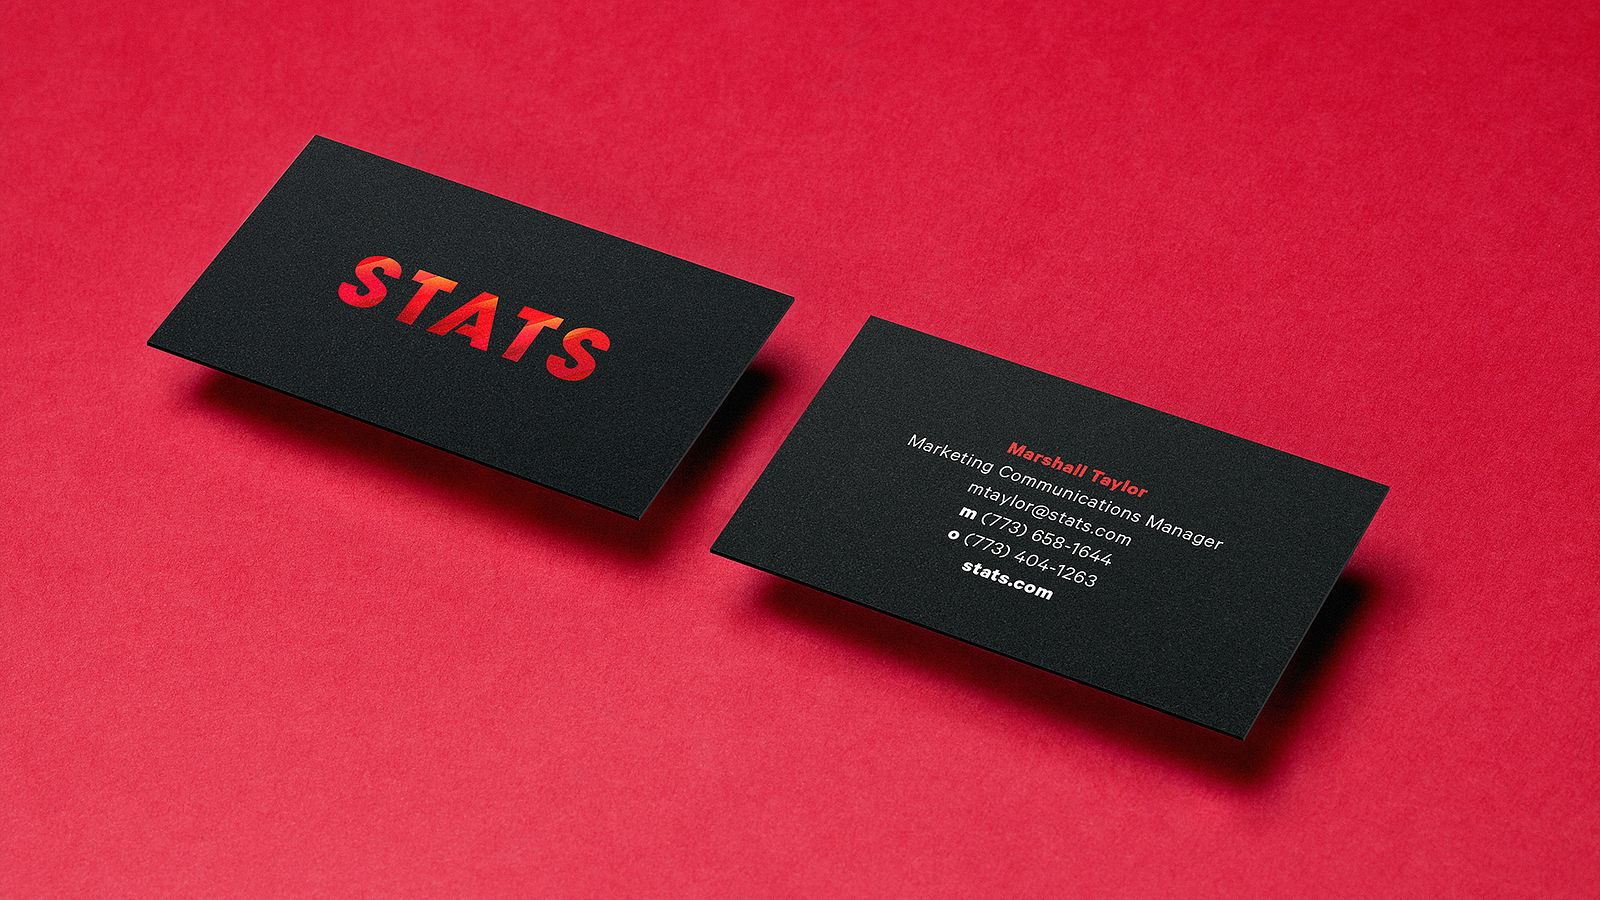 STATS business cards, designed and produced by Someoddpilot